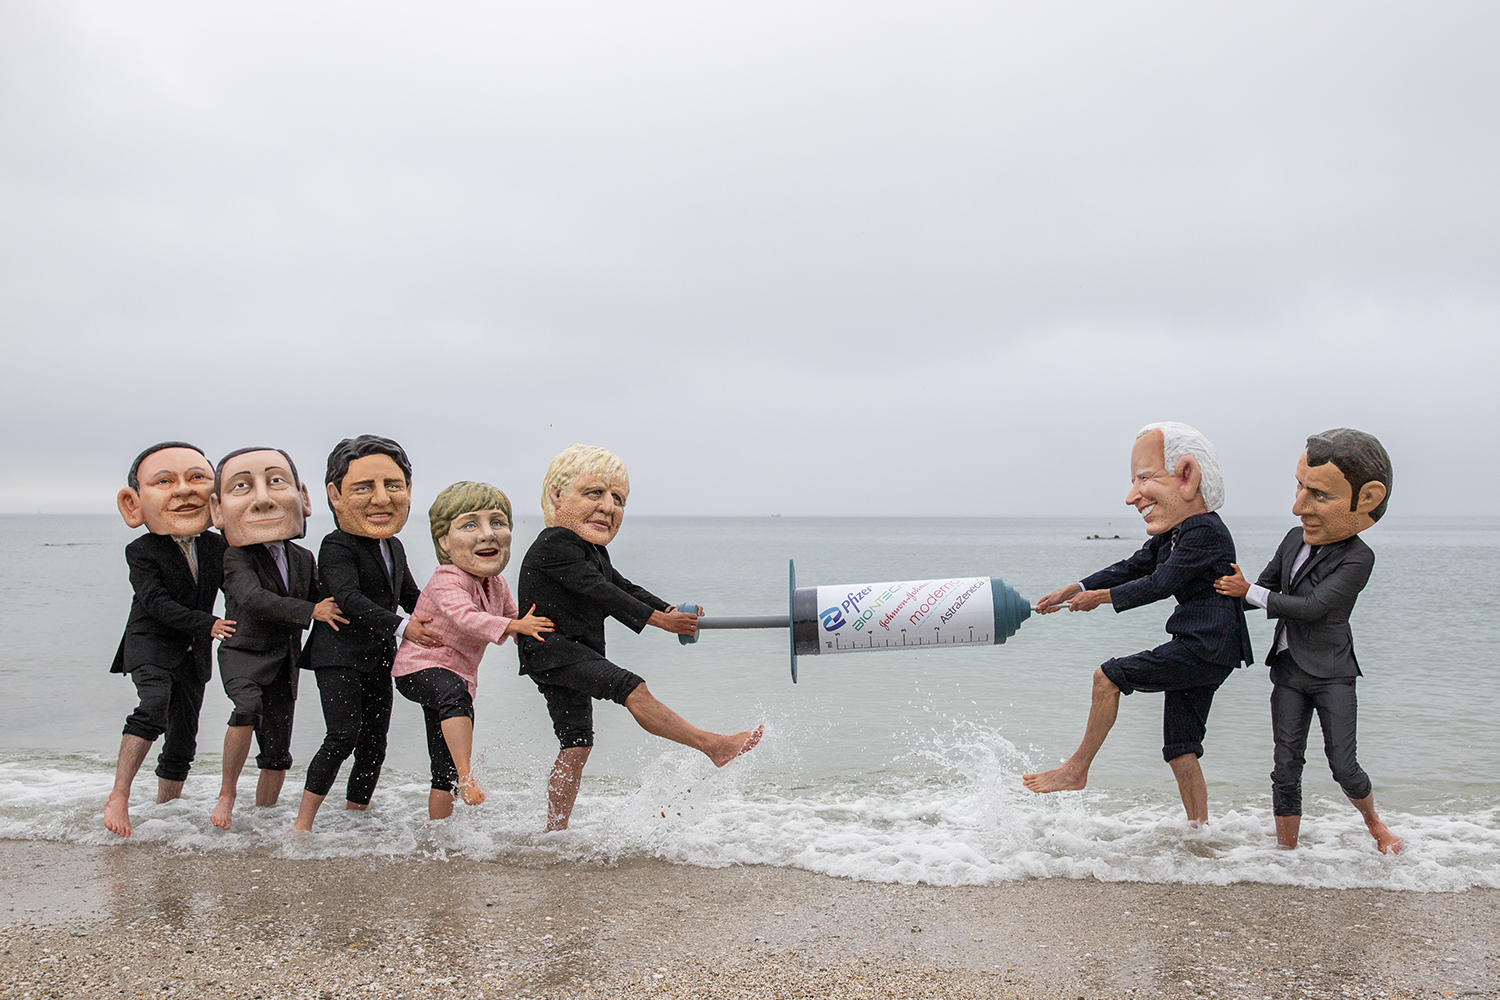 People's Vaccine Alliance campaigners pose as G-7 leaders fighting over a COVID-19 vaccine in Falmouth, England, on June 11.